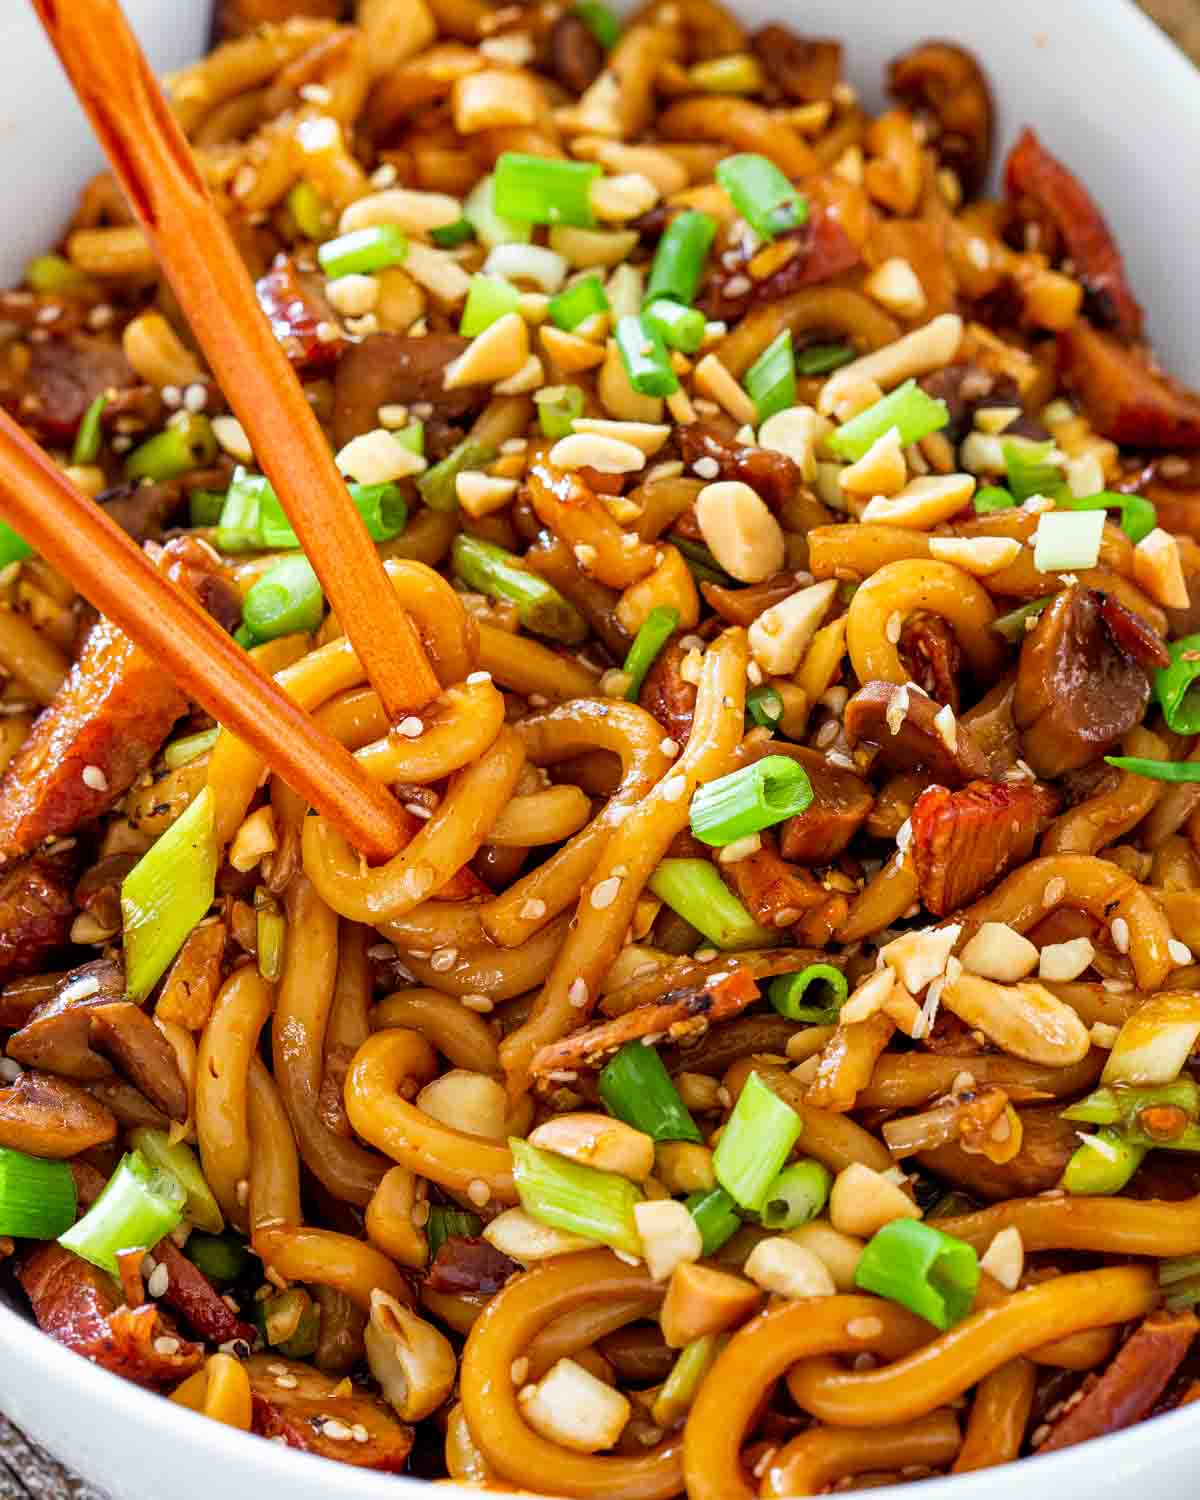 asian style udon noodles with chopsticks and garnished with green onions and peanuts